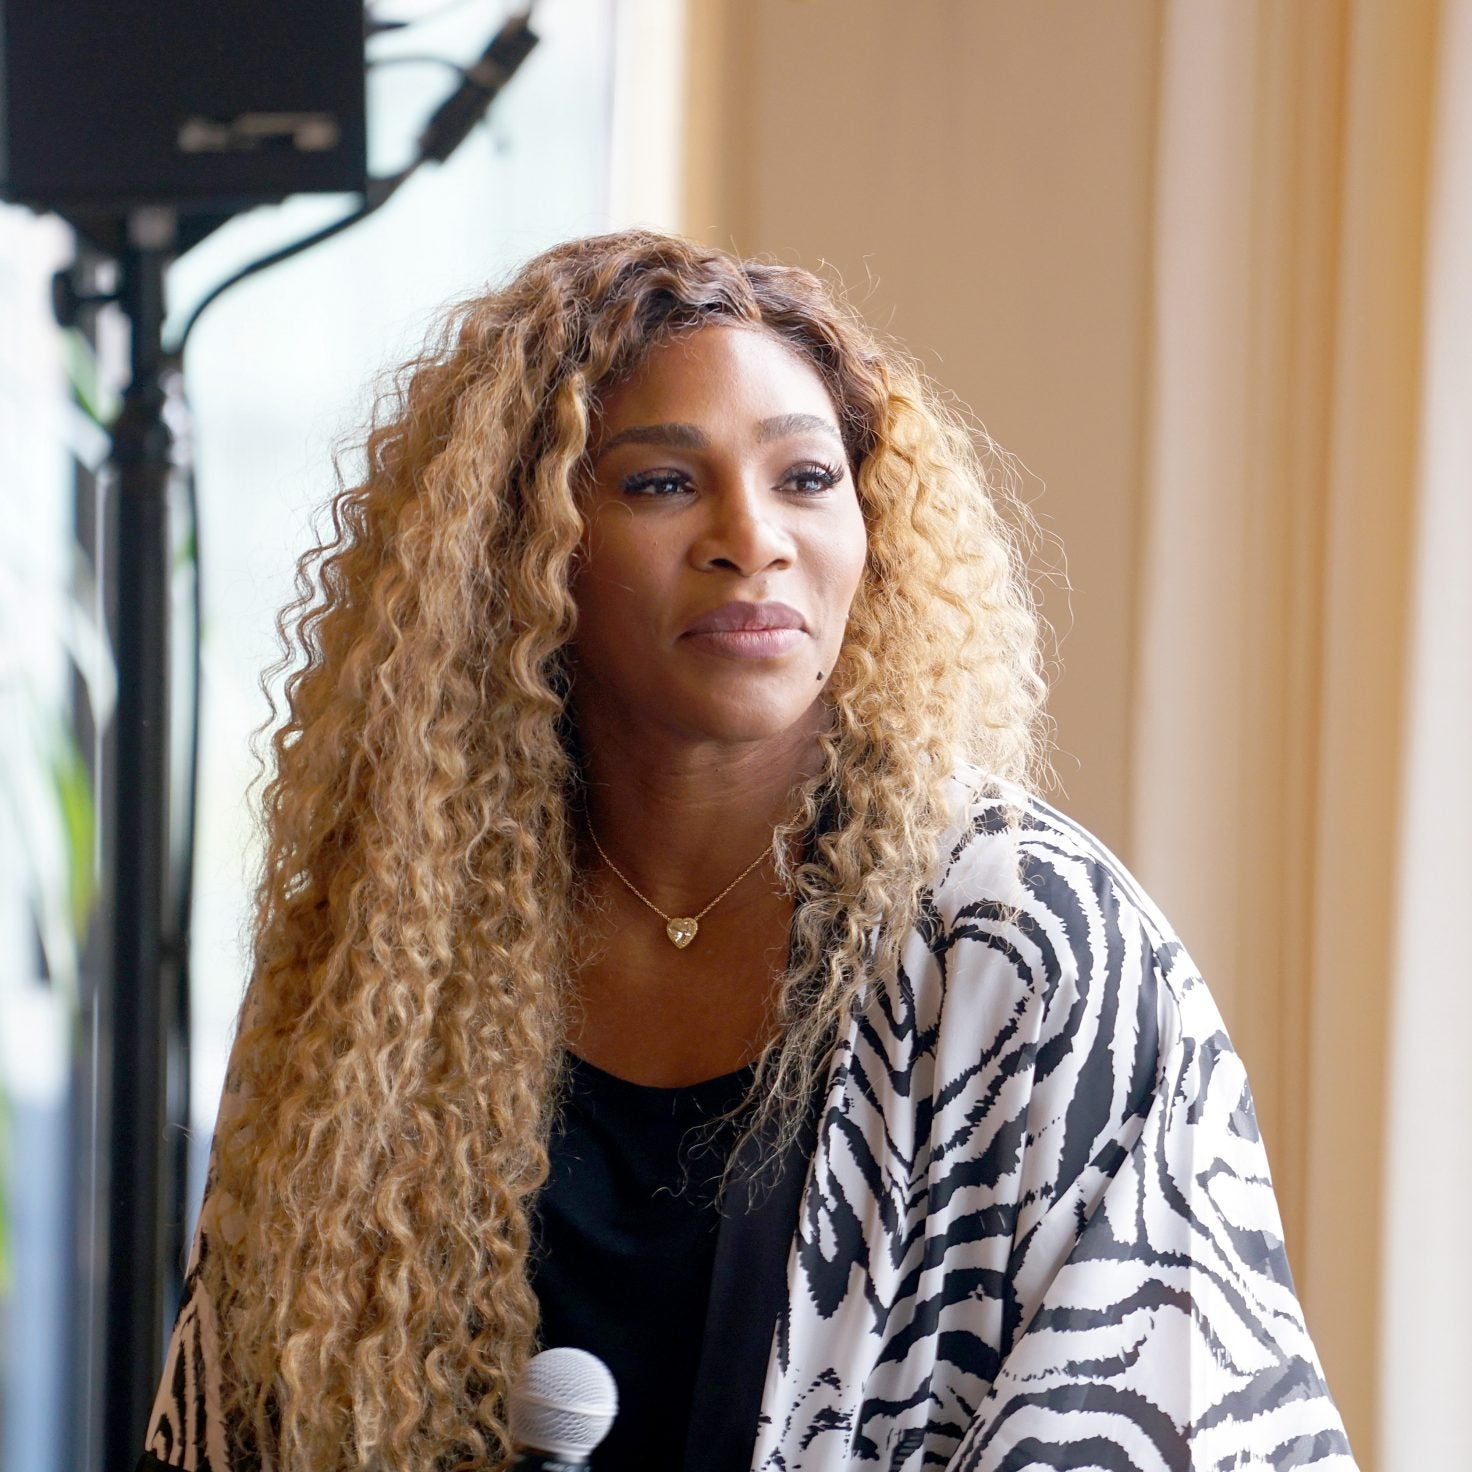 Serena Williams Is On A Mission To Help Educate Women About The Realities Of Financial Abuse By A Partner